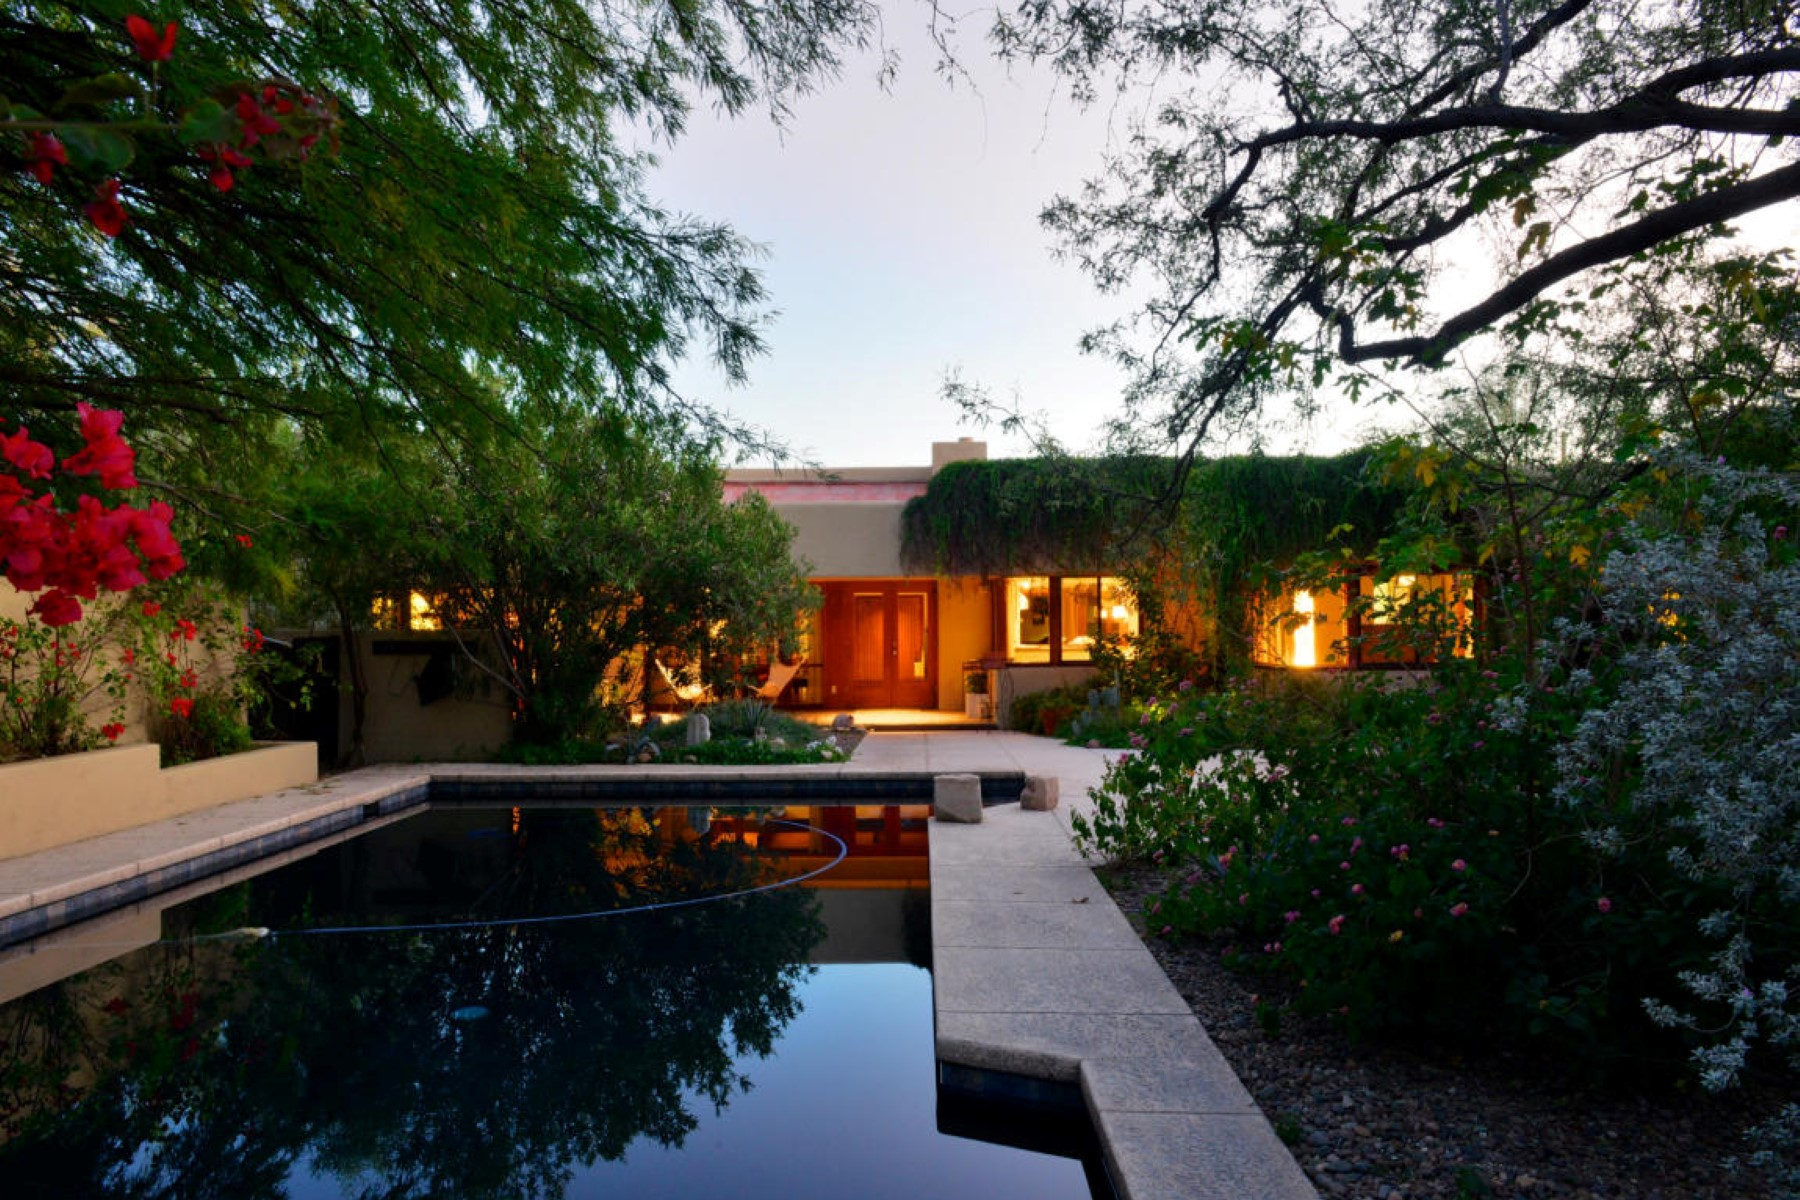 Single Family Home for Sale at Classic contemporary tucked away in a quiet enclave 6751 N Paseo De Los Altos Tucson, Arizona 85704 United States